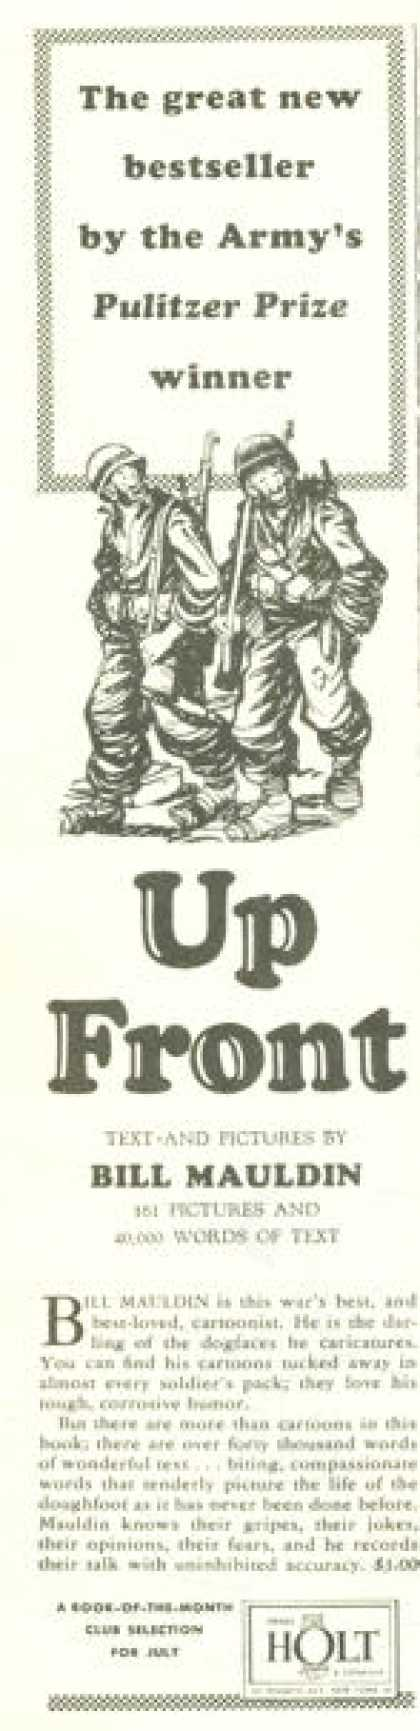 Bill Mauldin 'up Front' Wwii Cartoonist (1945)